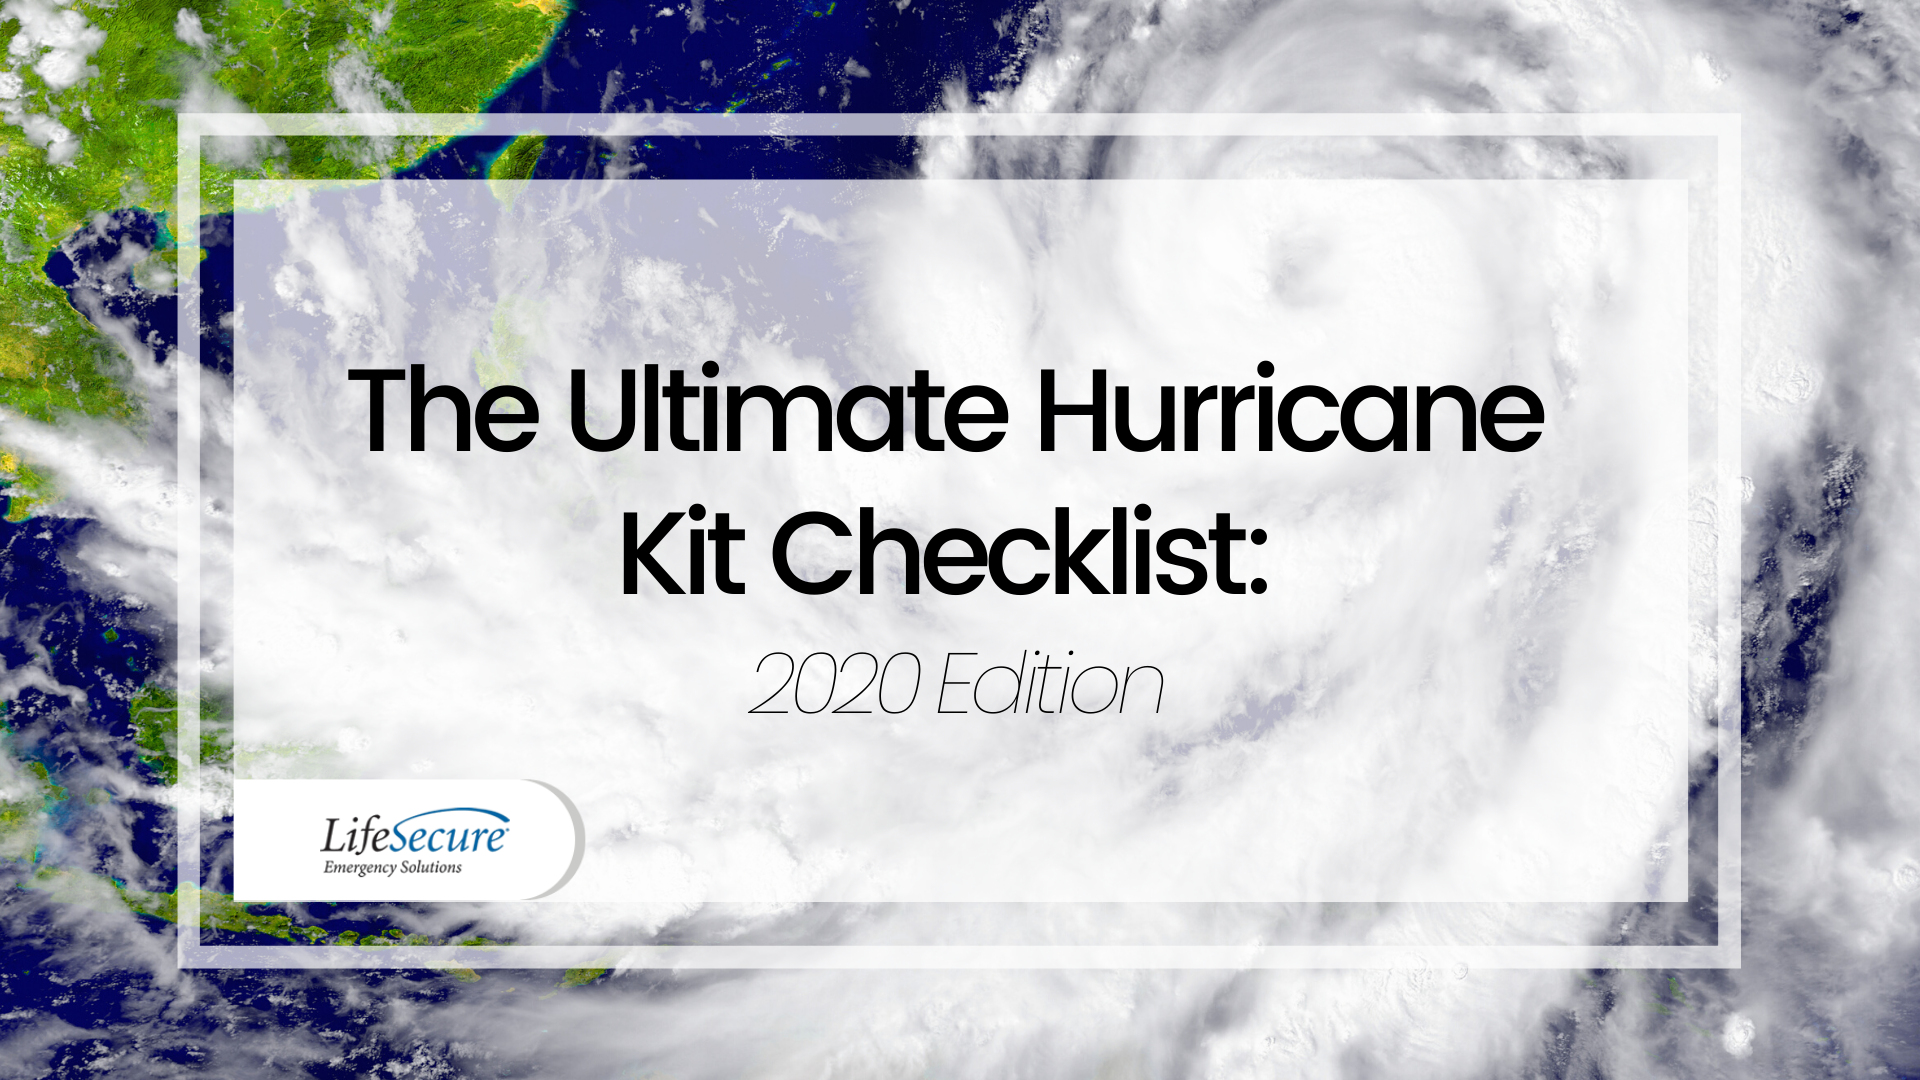 The Ultimate Hurricane Kit Checklist: 2020 Edition